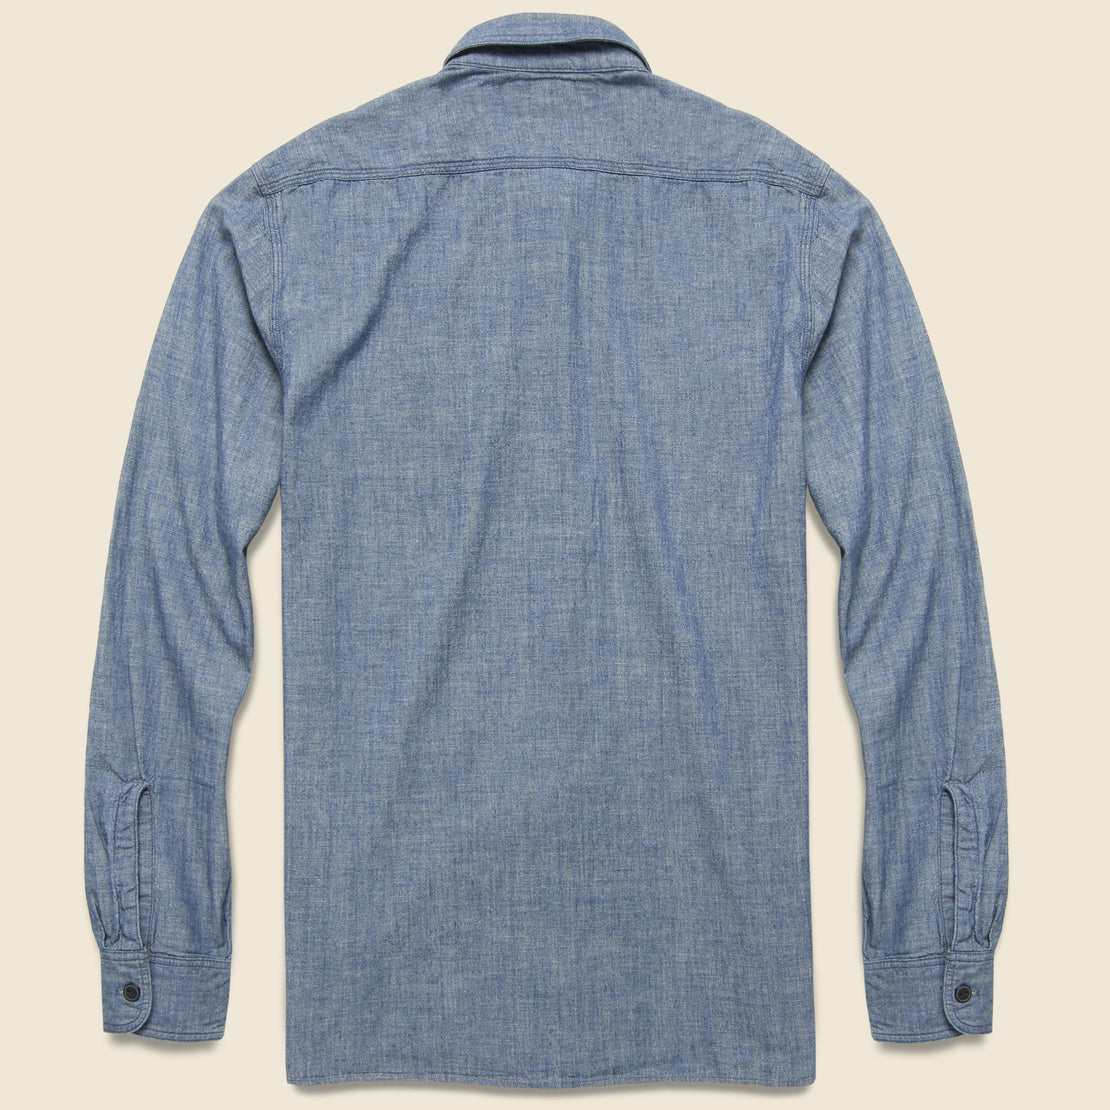 Hudson Chambray Workshirt - Indigo Rinse